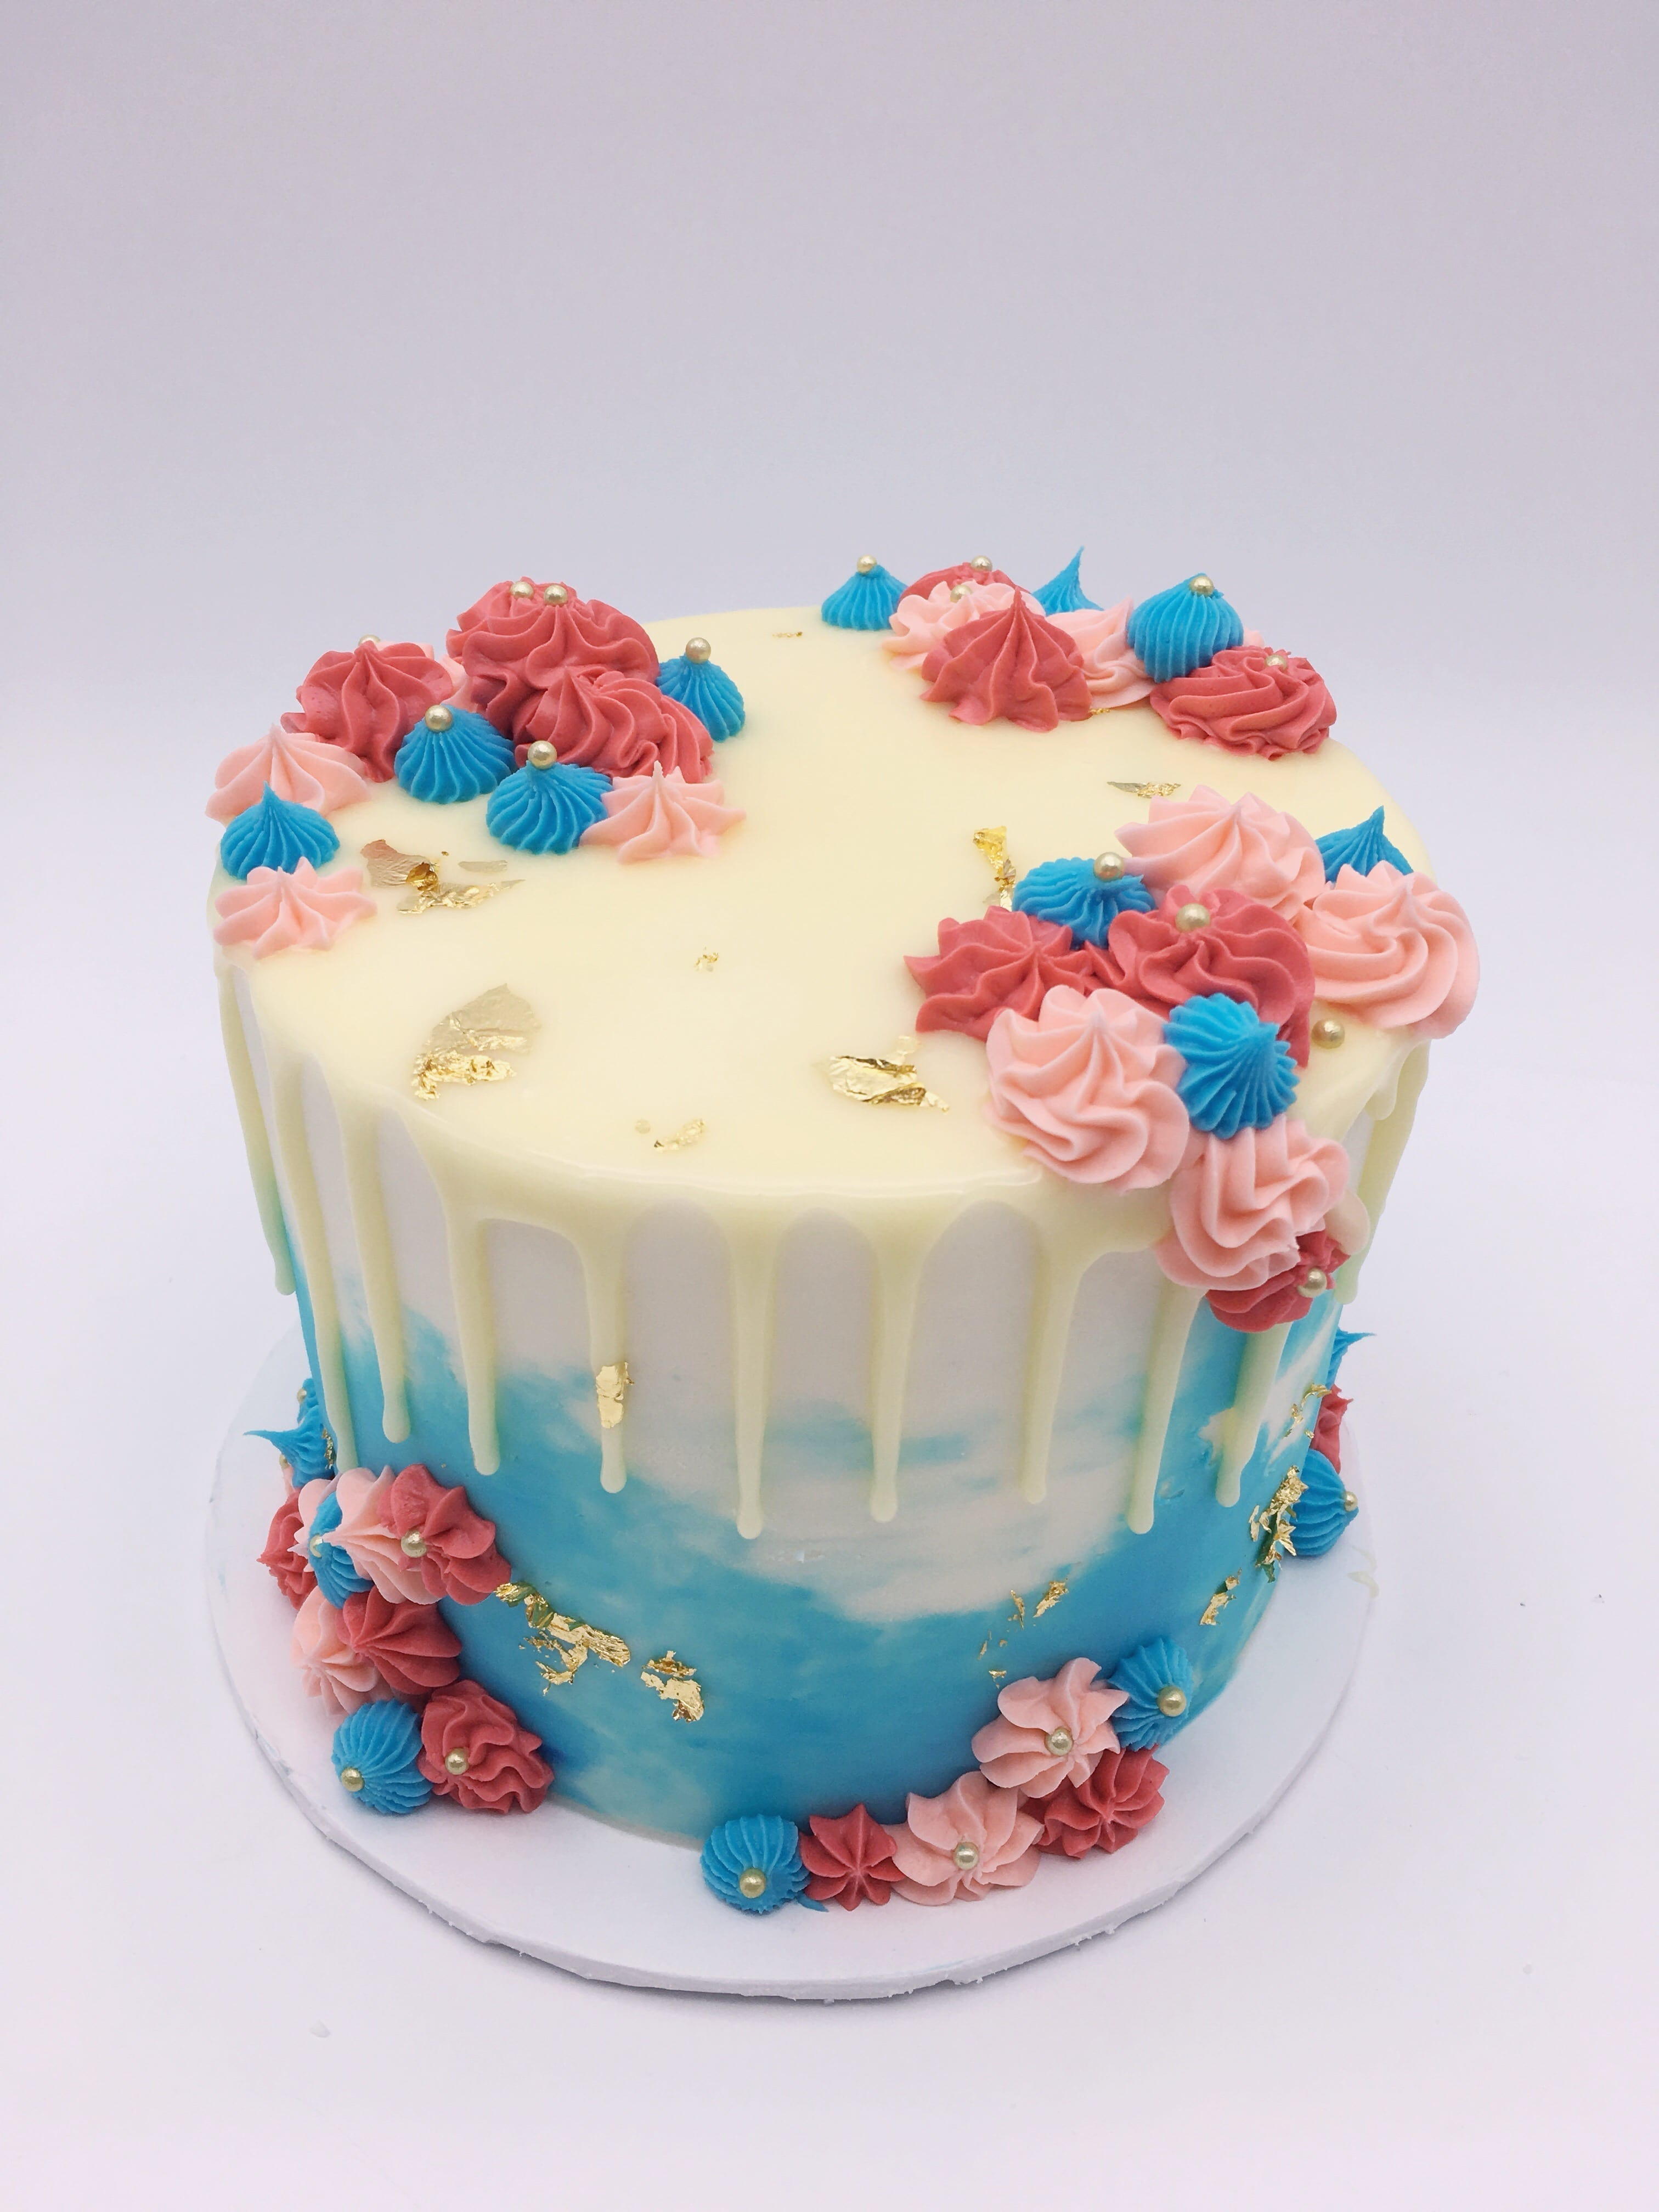 Pink and Blue Watercolor Cake with Flowers and Gold Foil   3 Sweet Girls Cakery